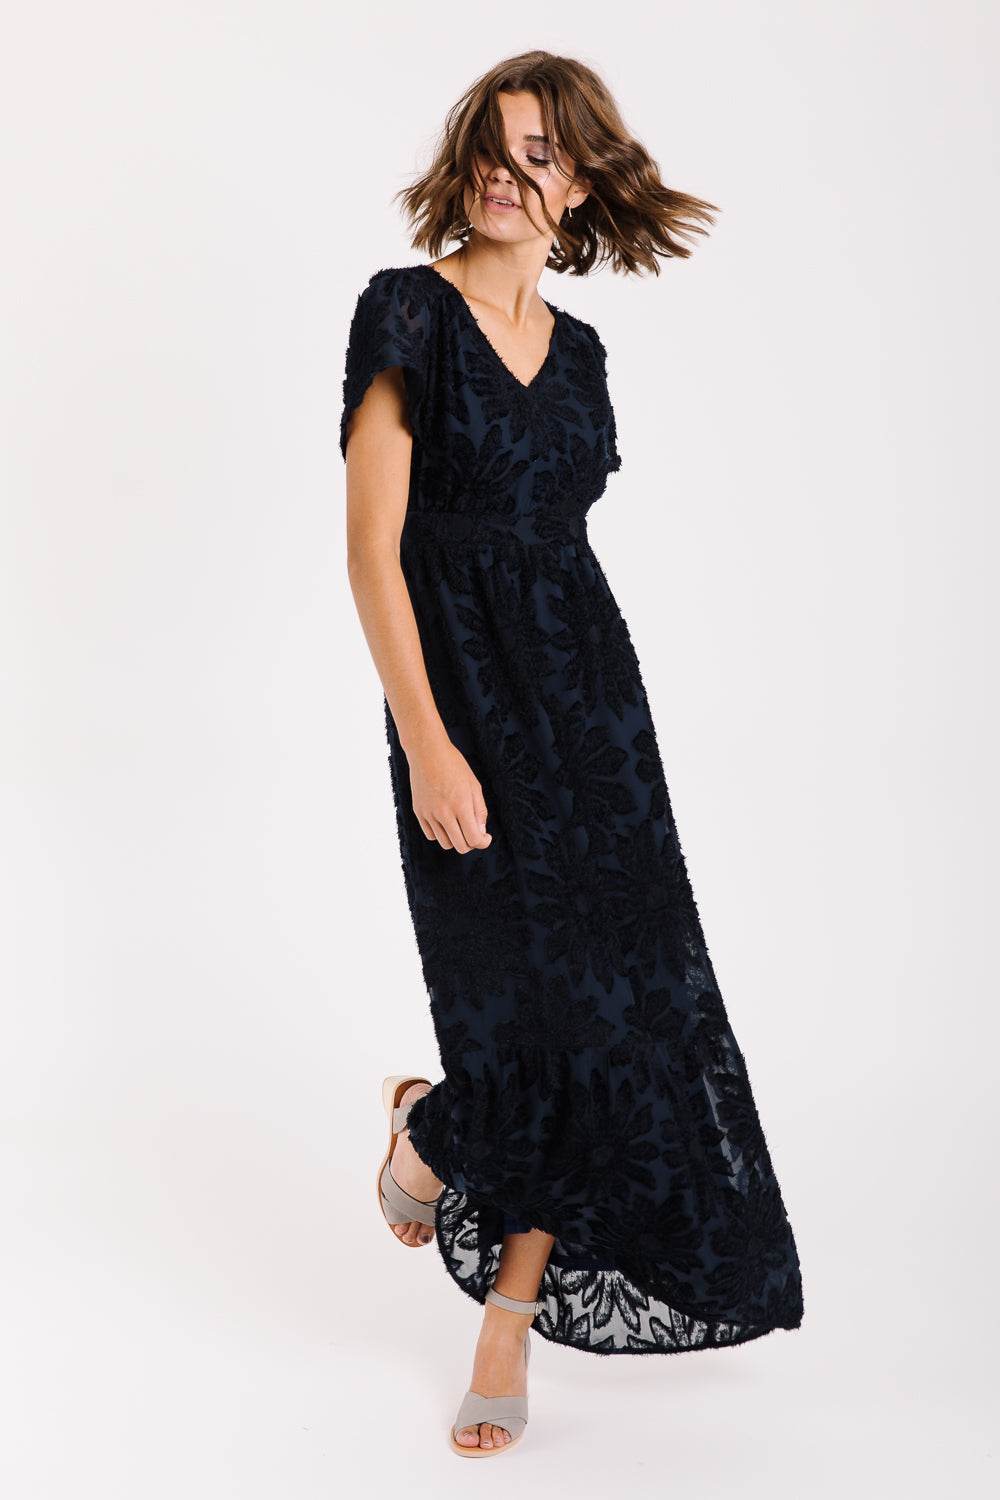 Piper & Scoot: The Theater Detail Maxi Dress in Navy